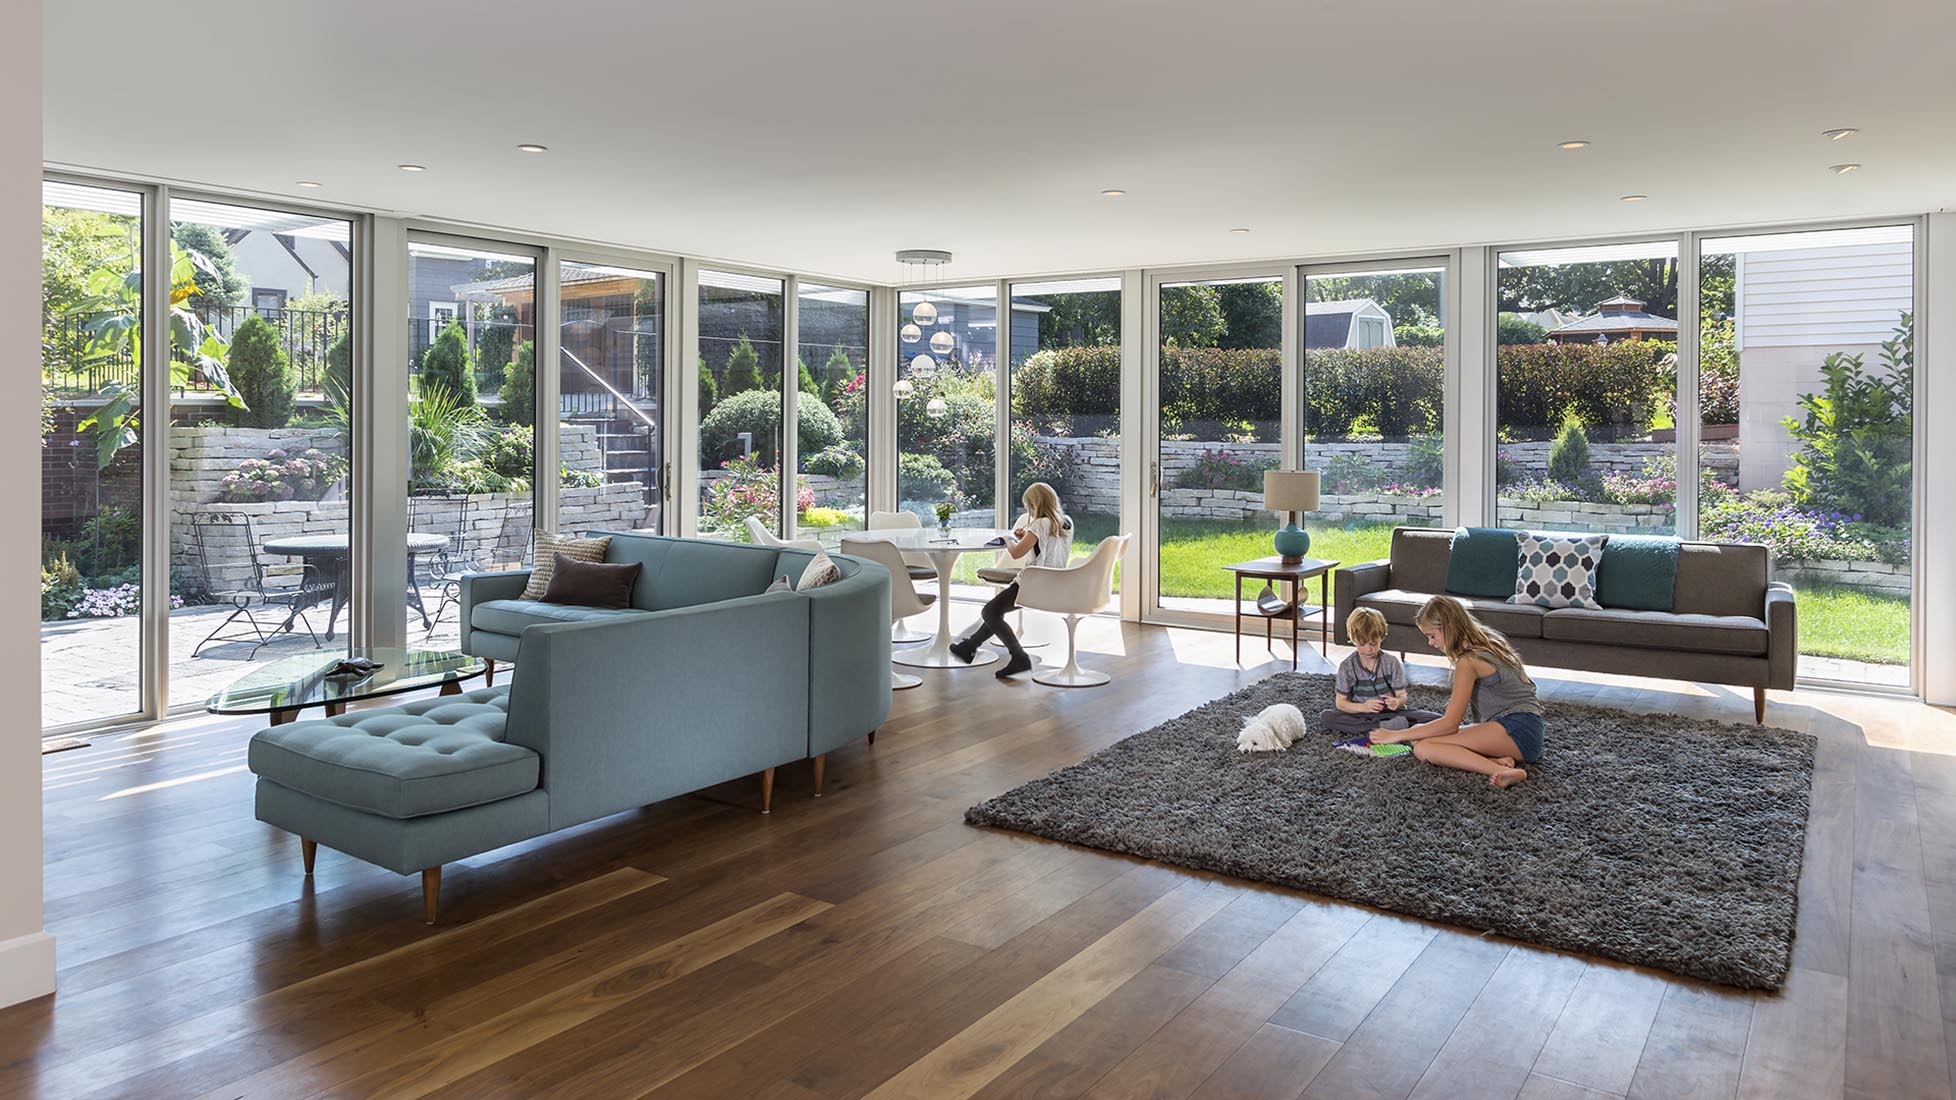 Andrea Rugg Photography | Residential Interiors Photography